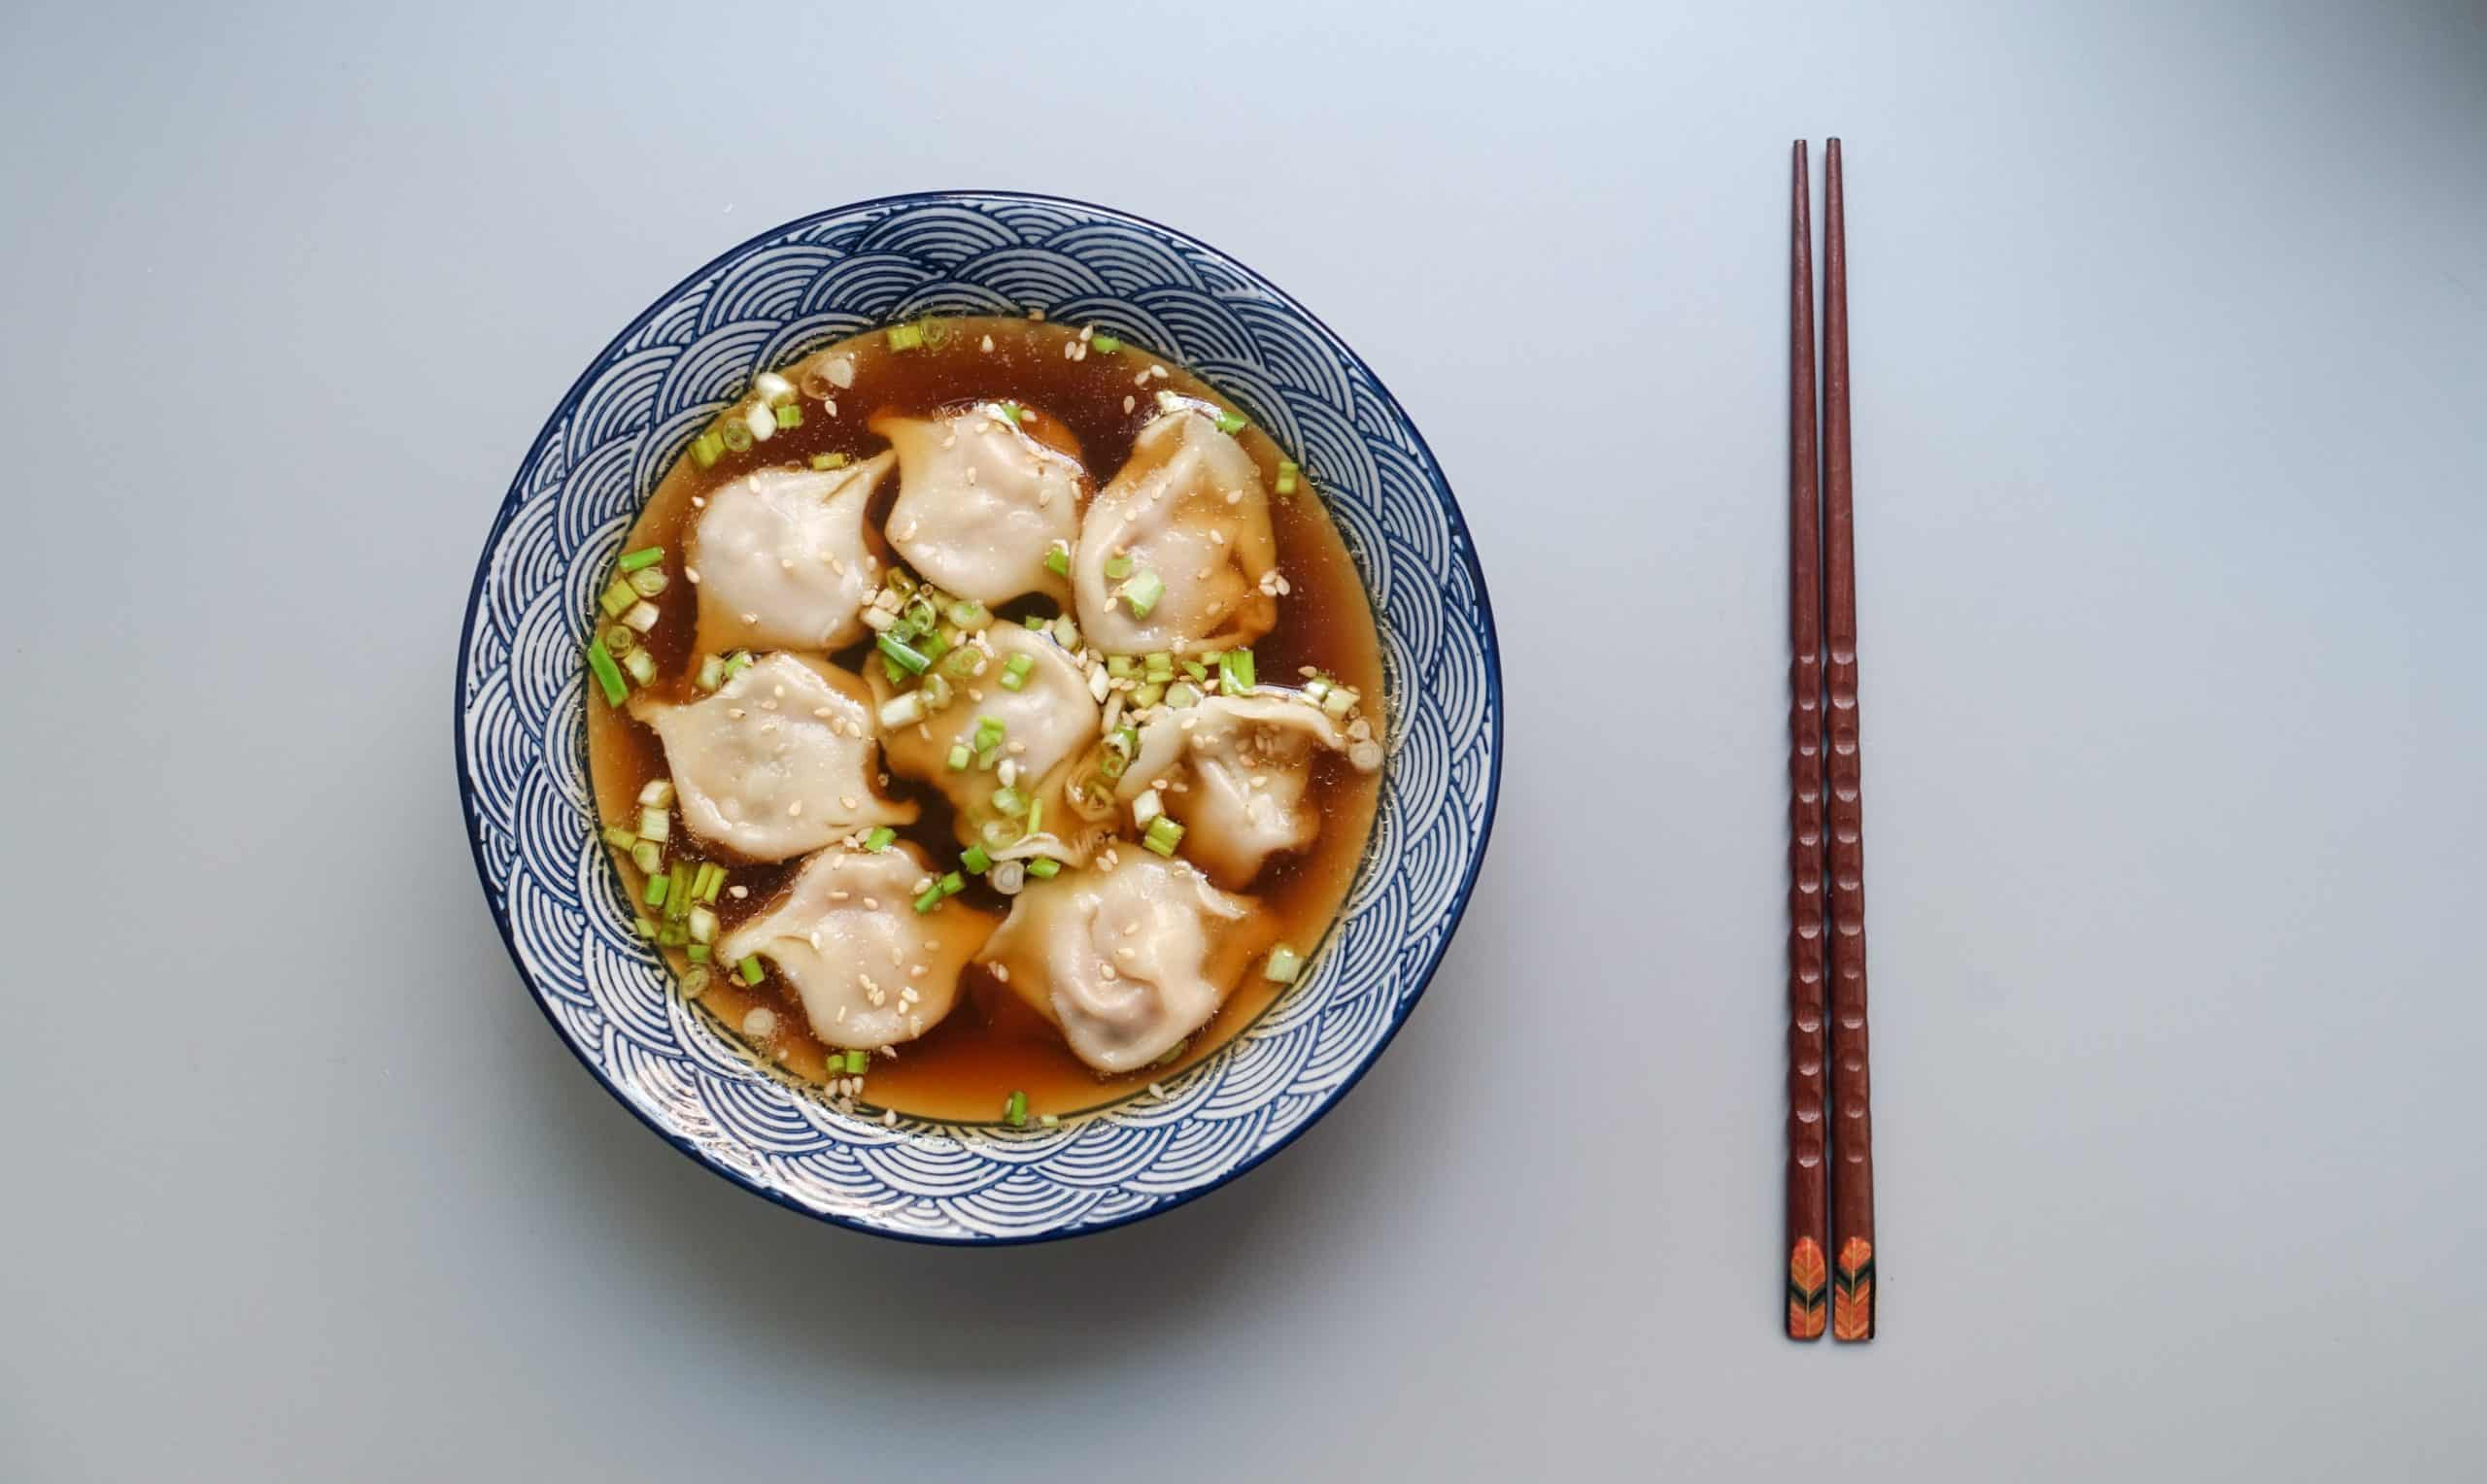 Diversity Of Asian Cuisine: Great Way To Explore Different Cuisines